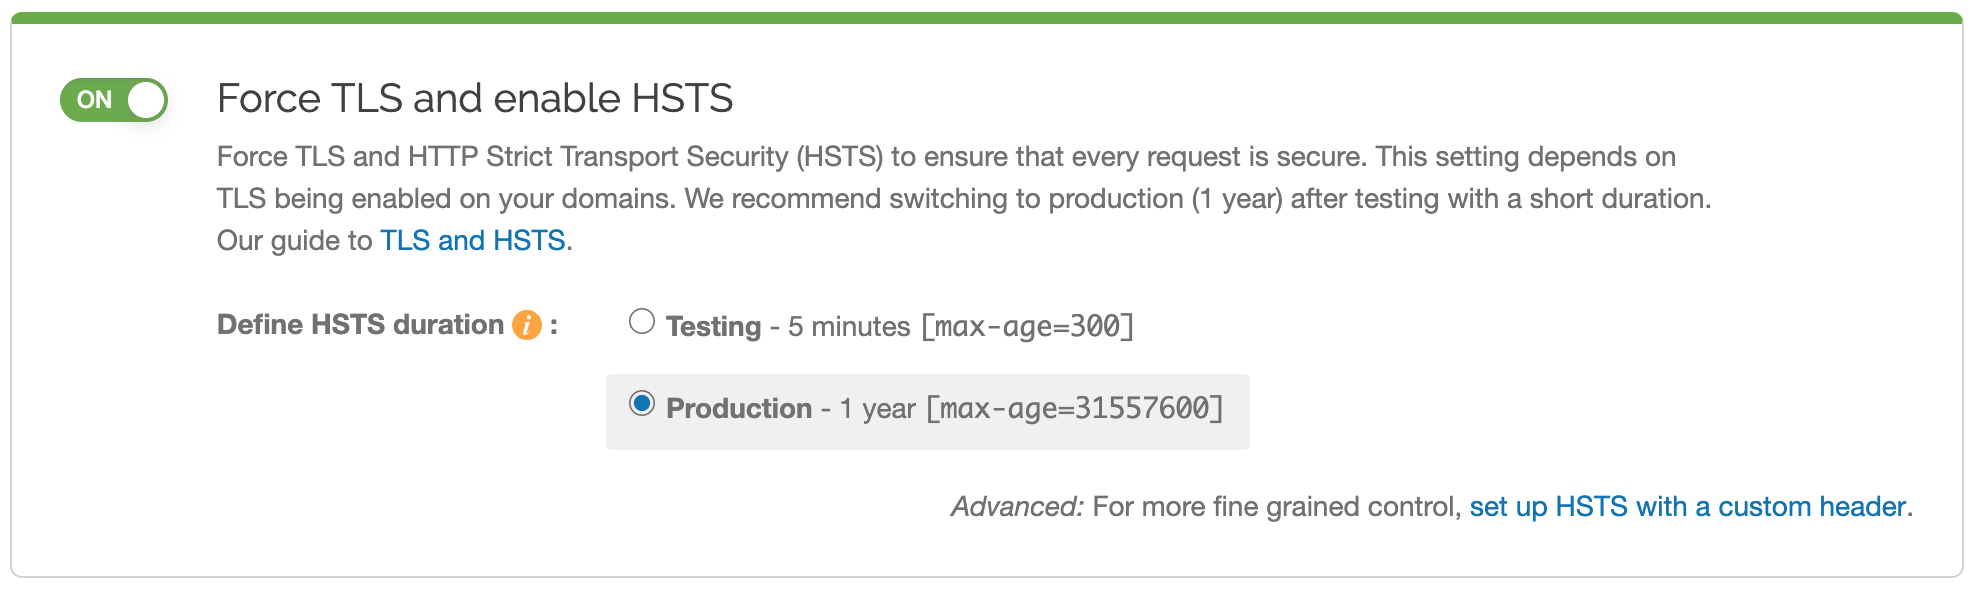 new HSTS settings